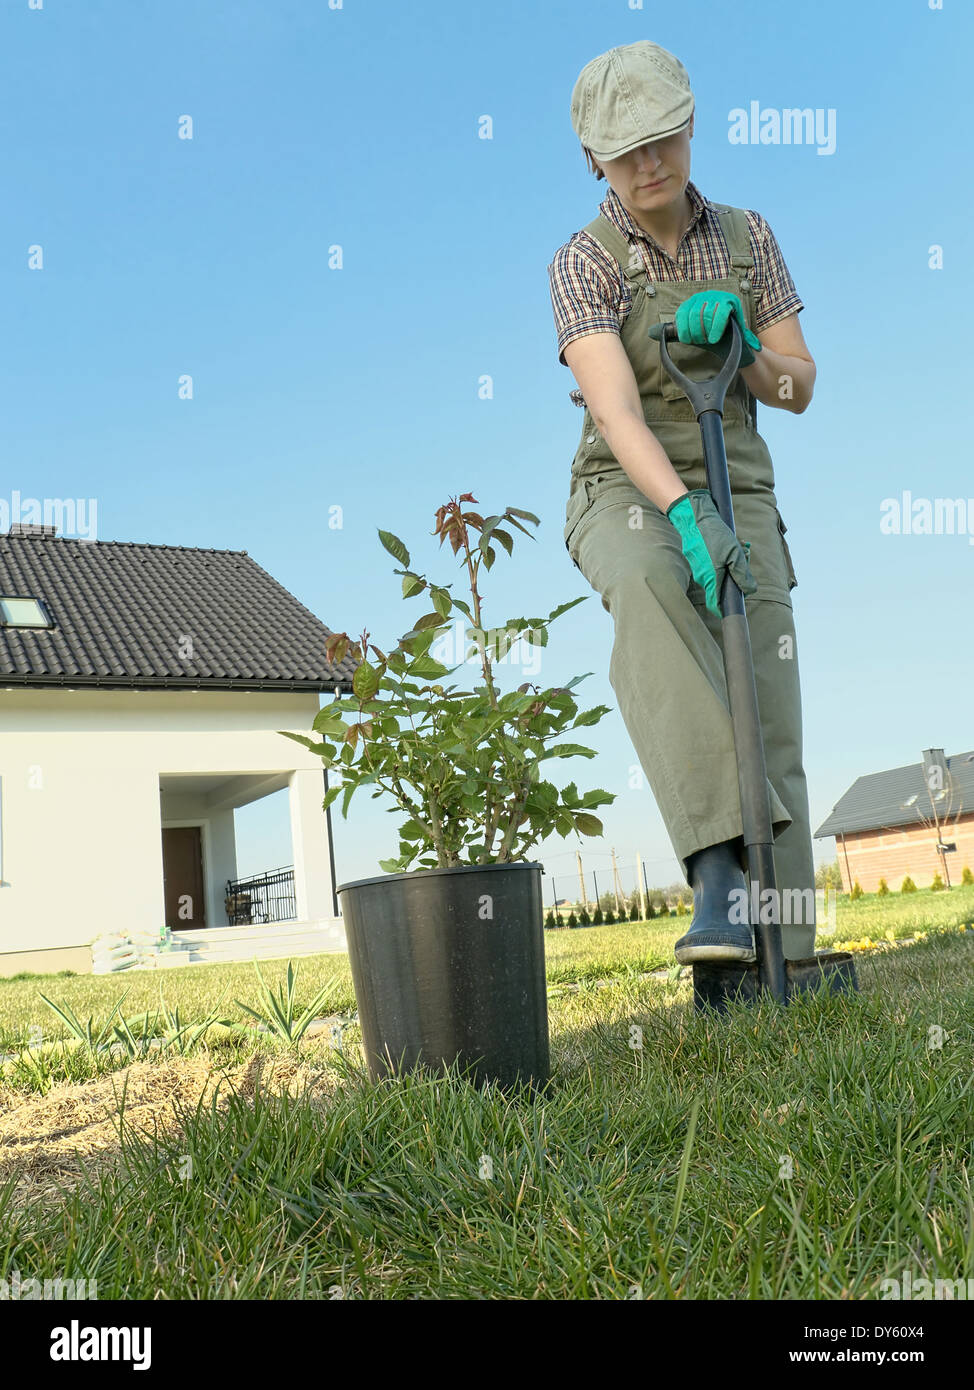 female gardener digging a hole with spade in order to plant a rose